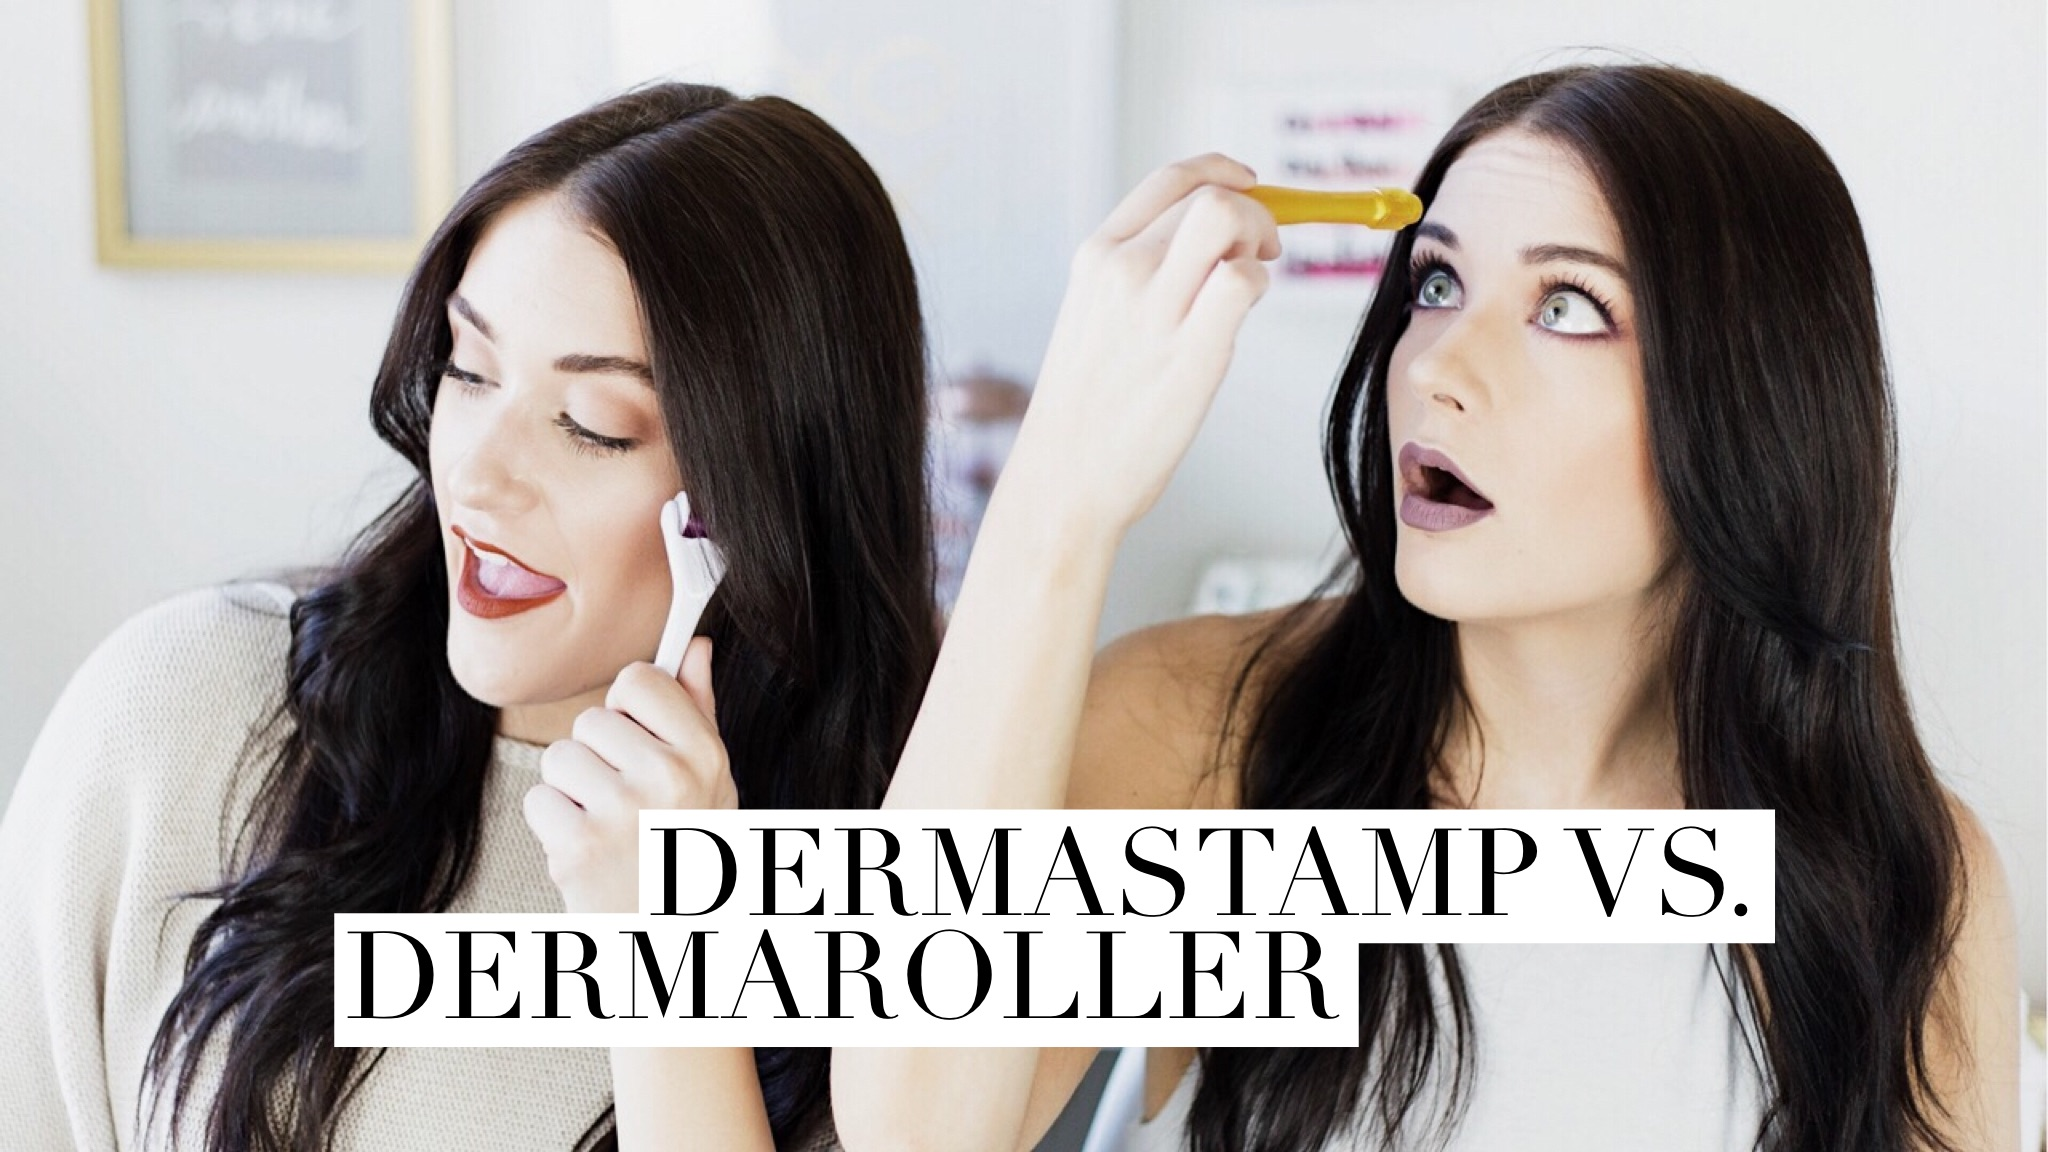 Dermastamp vs. Dermaroller | Twinspiration